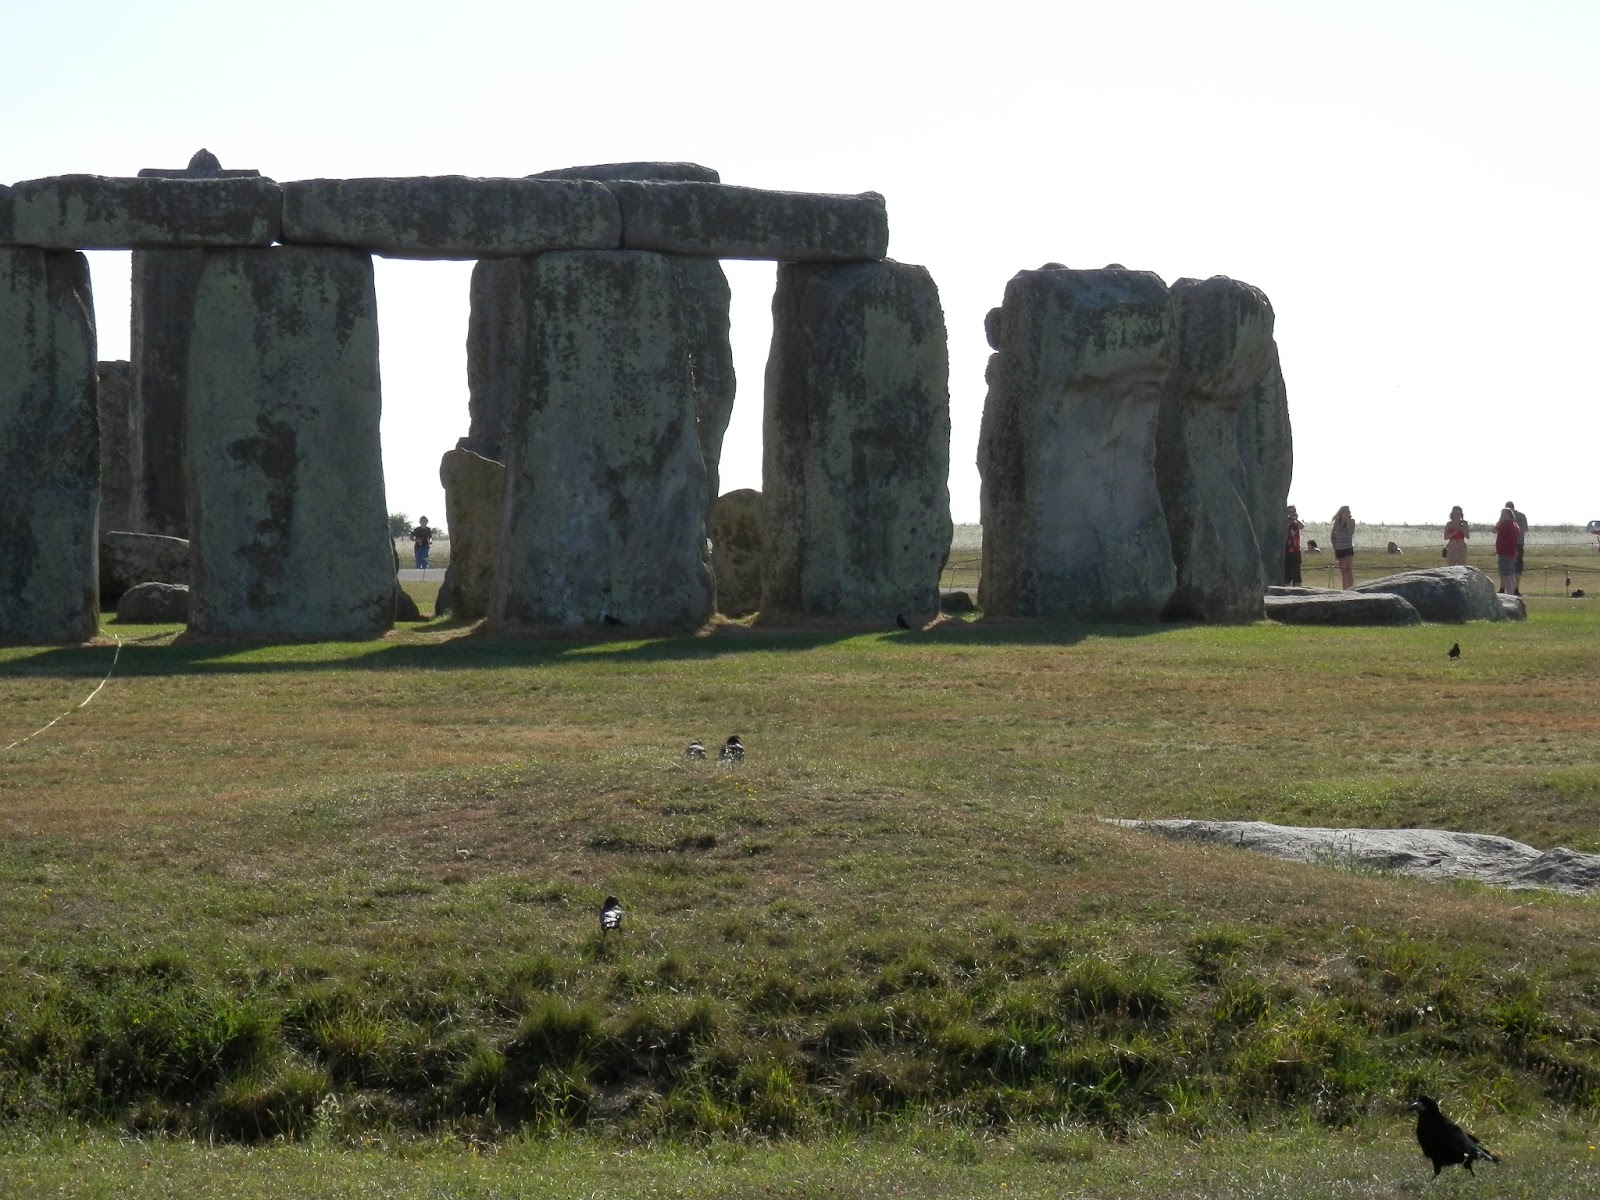 stonehenge mysterious and famous archaeological site